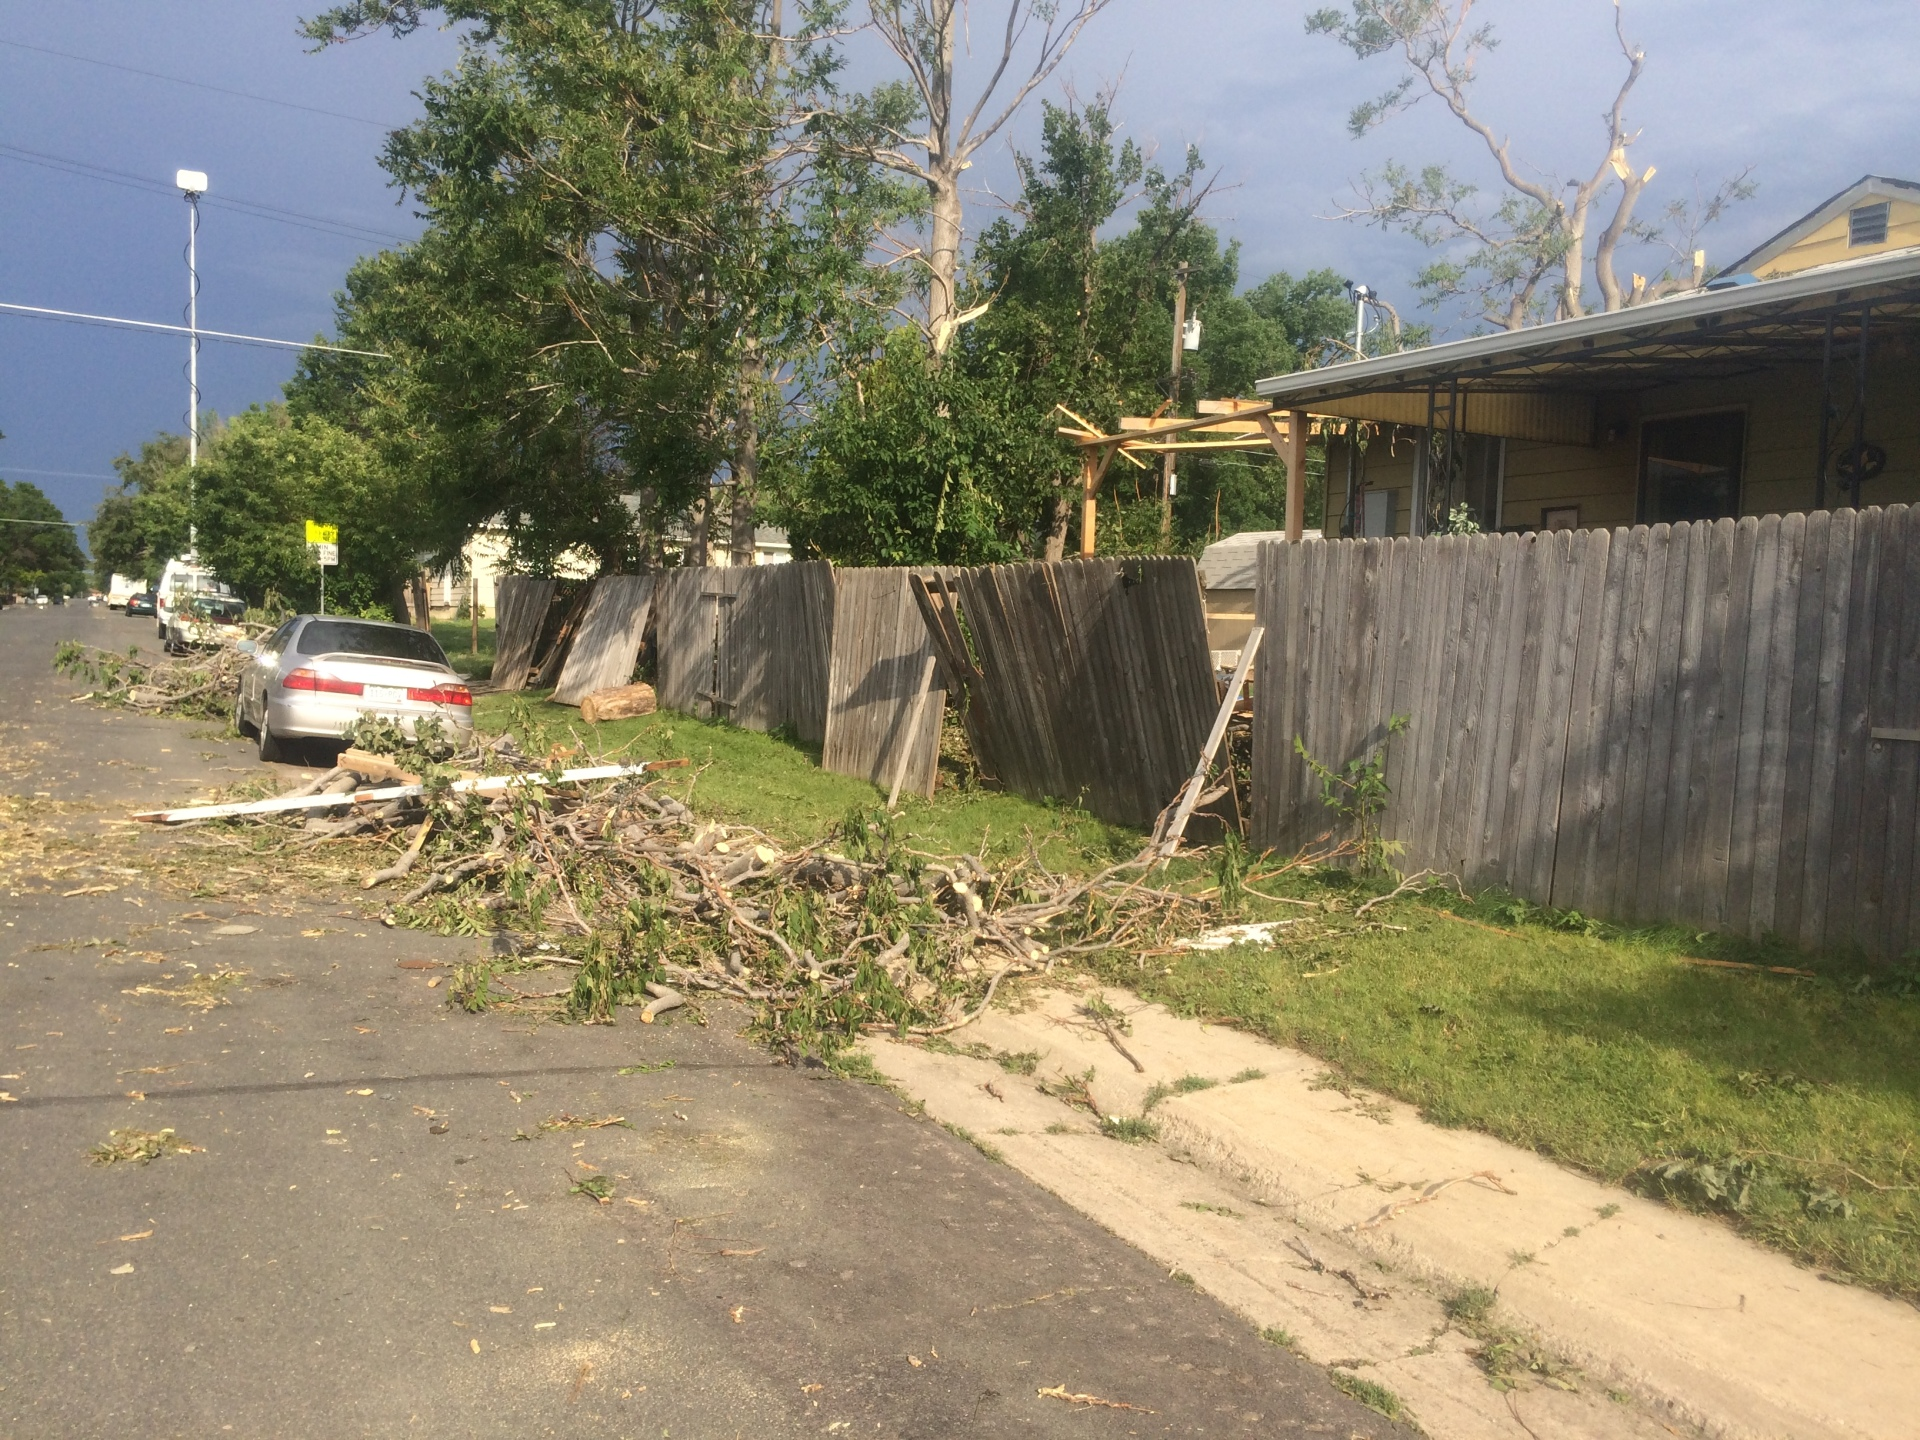 High winds tear out branches, trees and roofs.